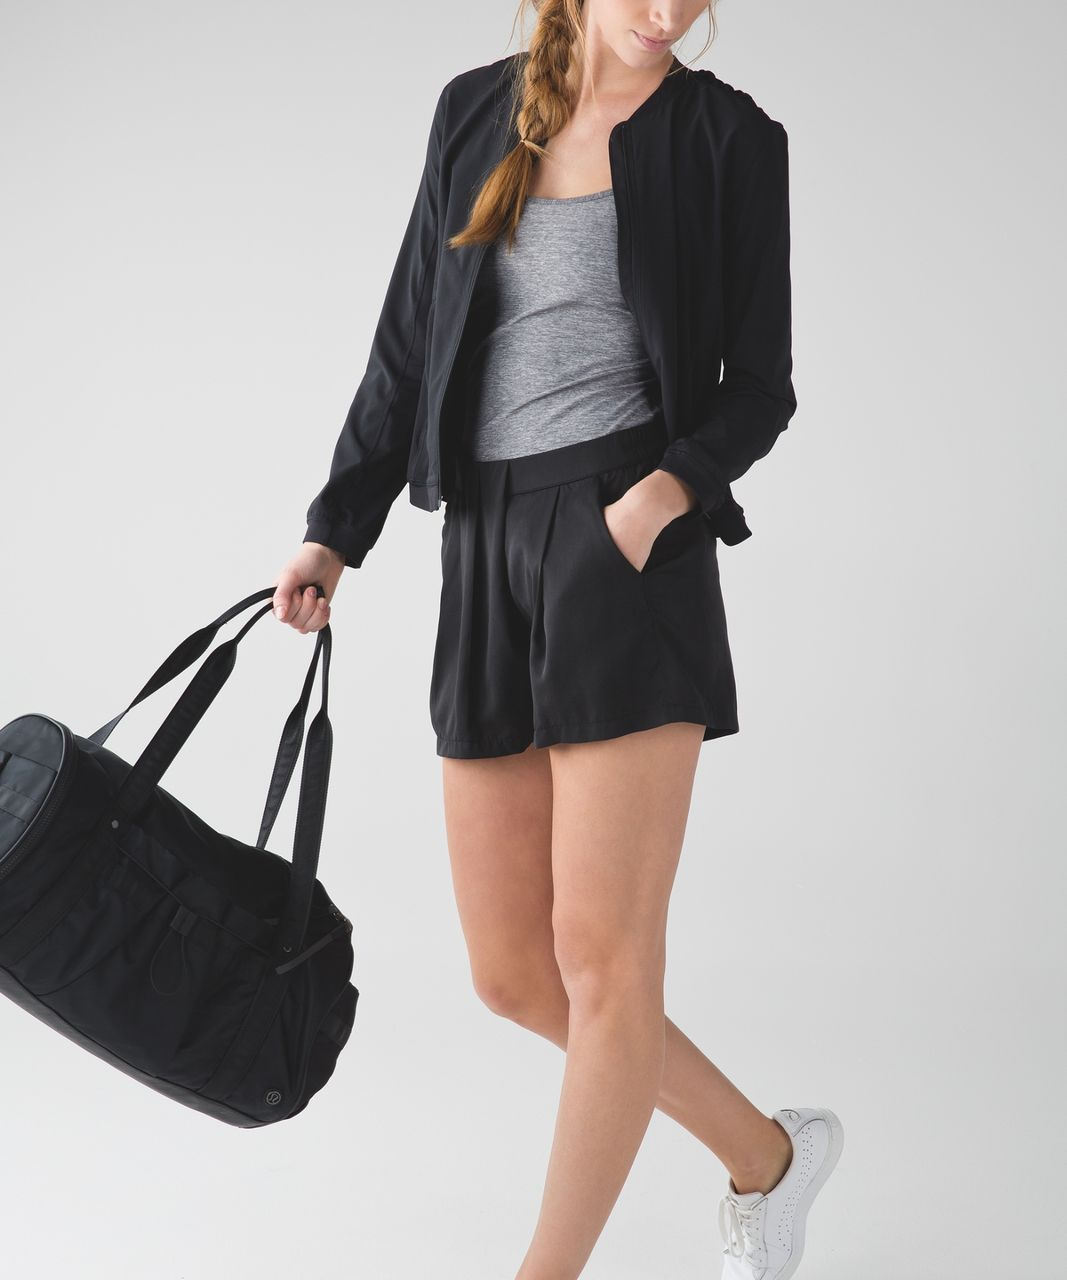 Lululemon &go Keepsake Short - Black